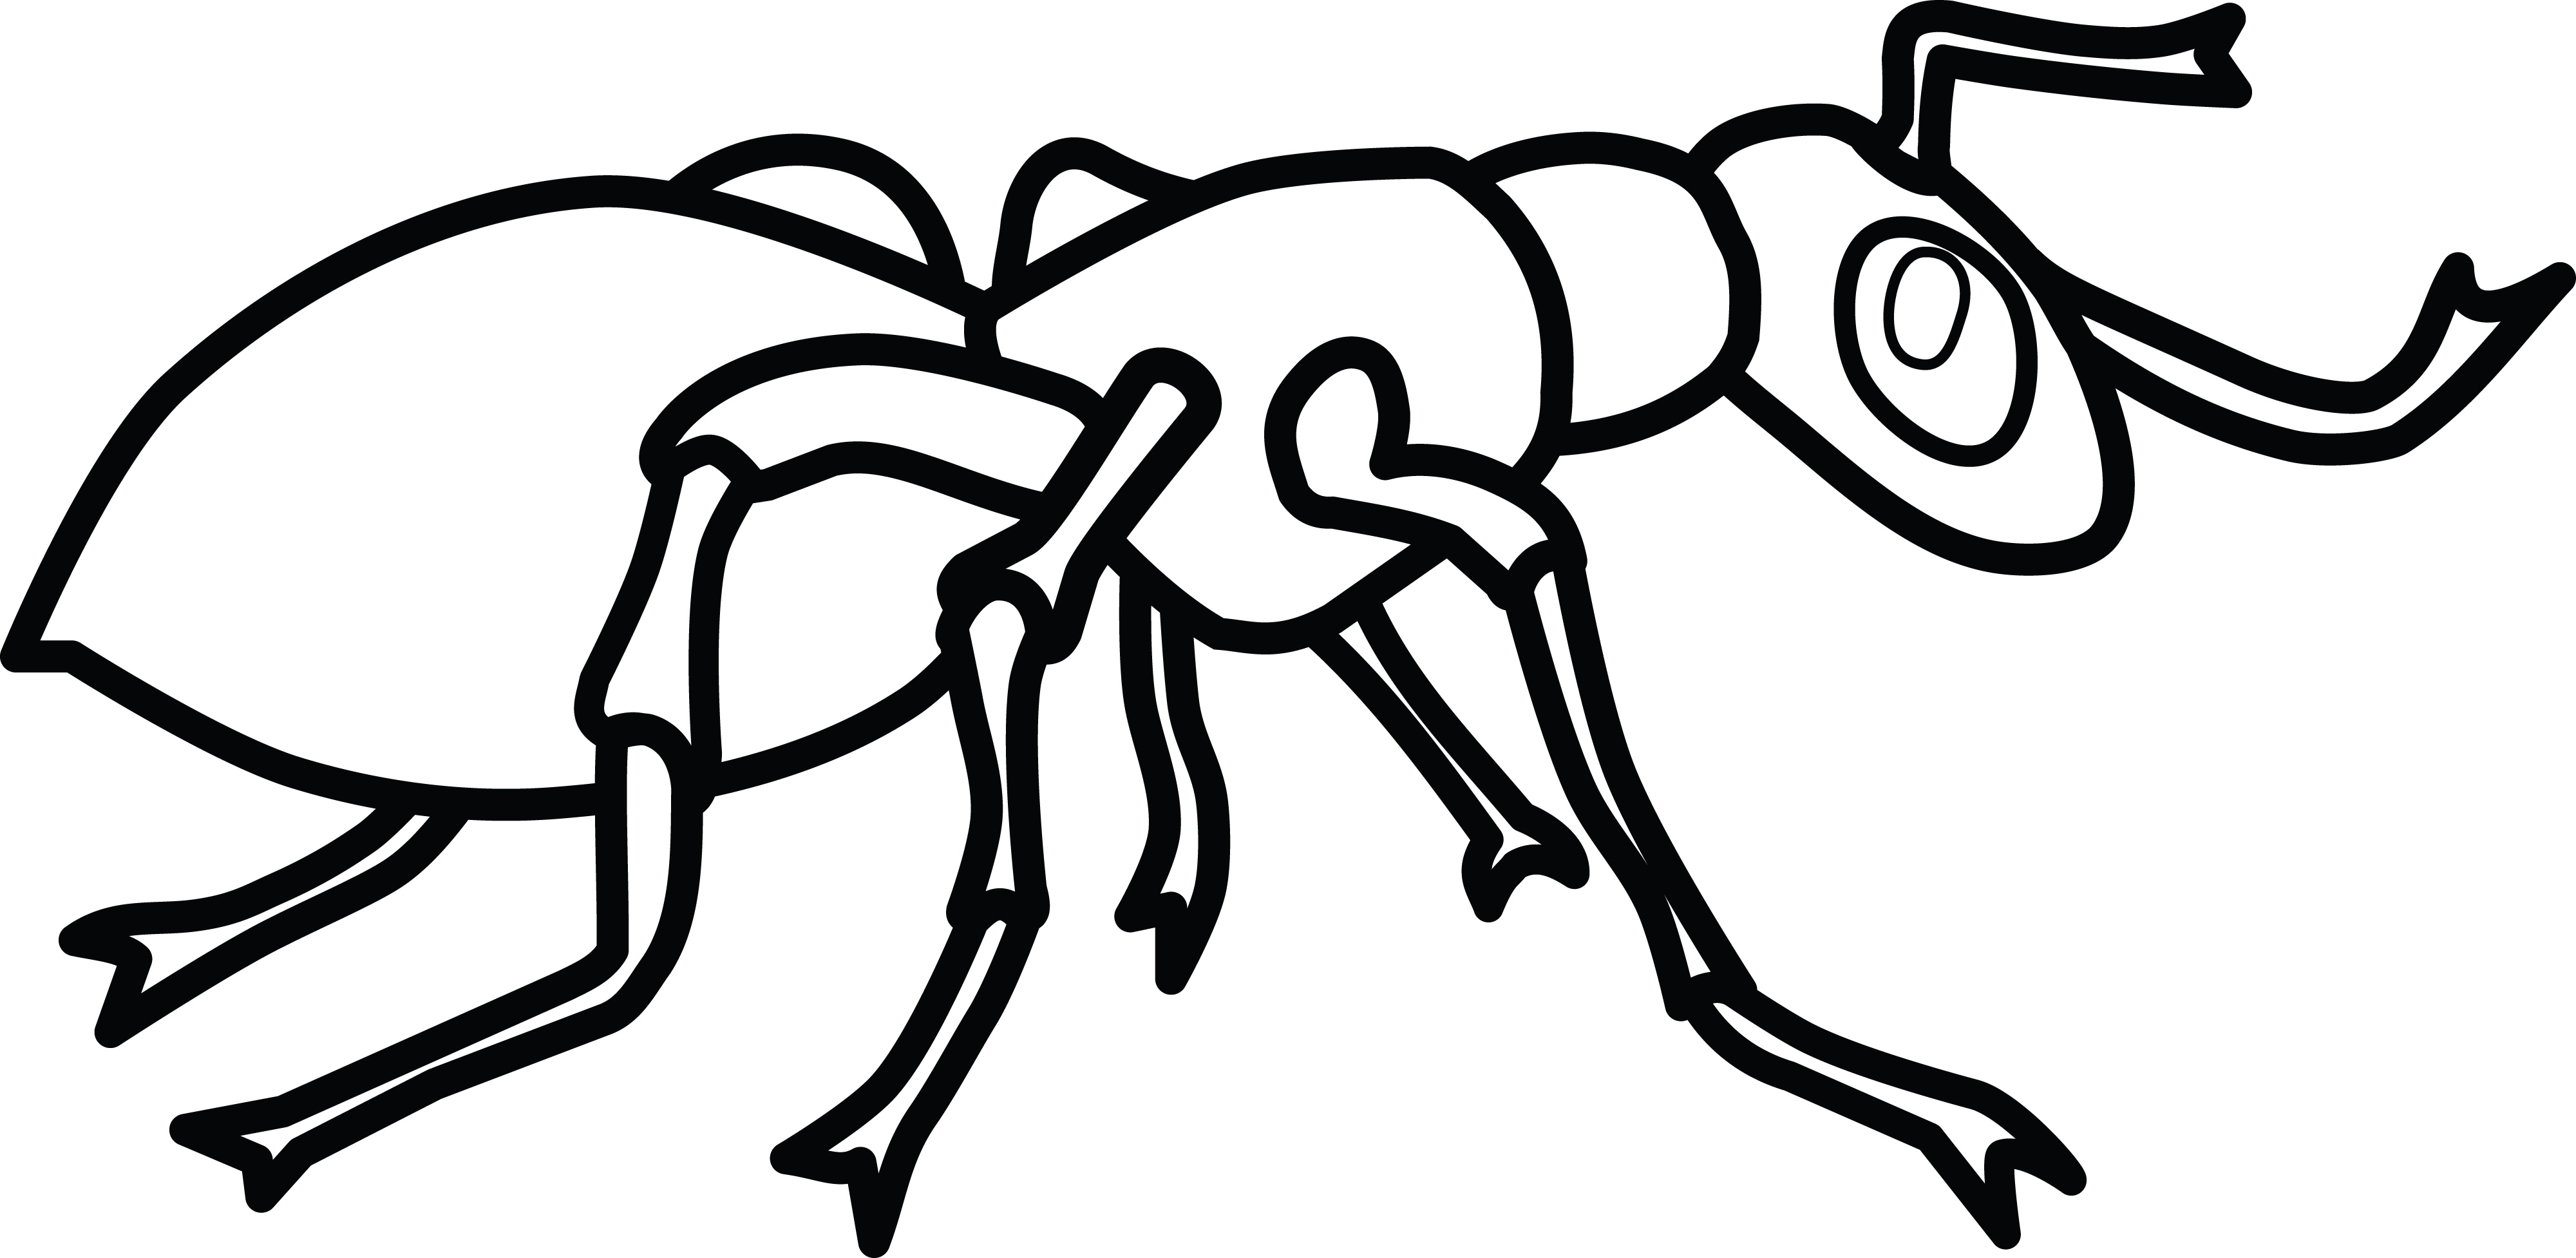 drawing of an ant ant 3 black white line art svg clipart best clipart best ant an of drawing